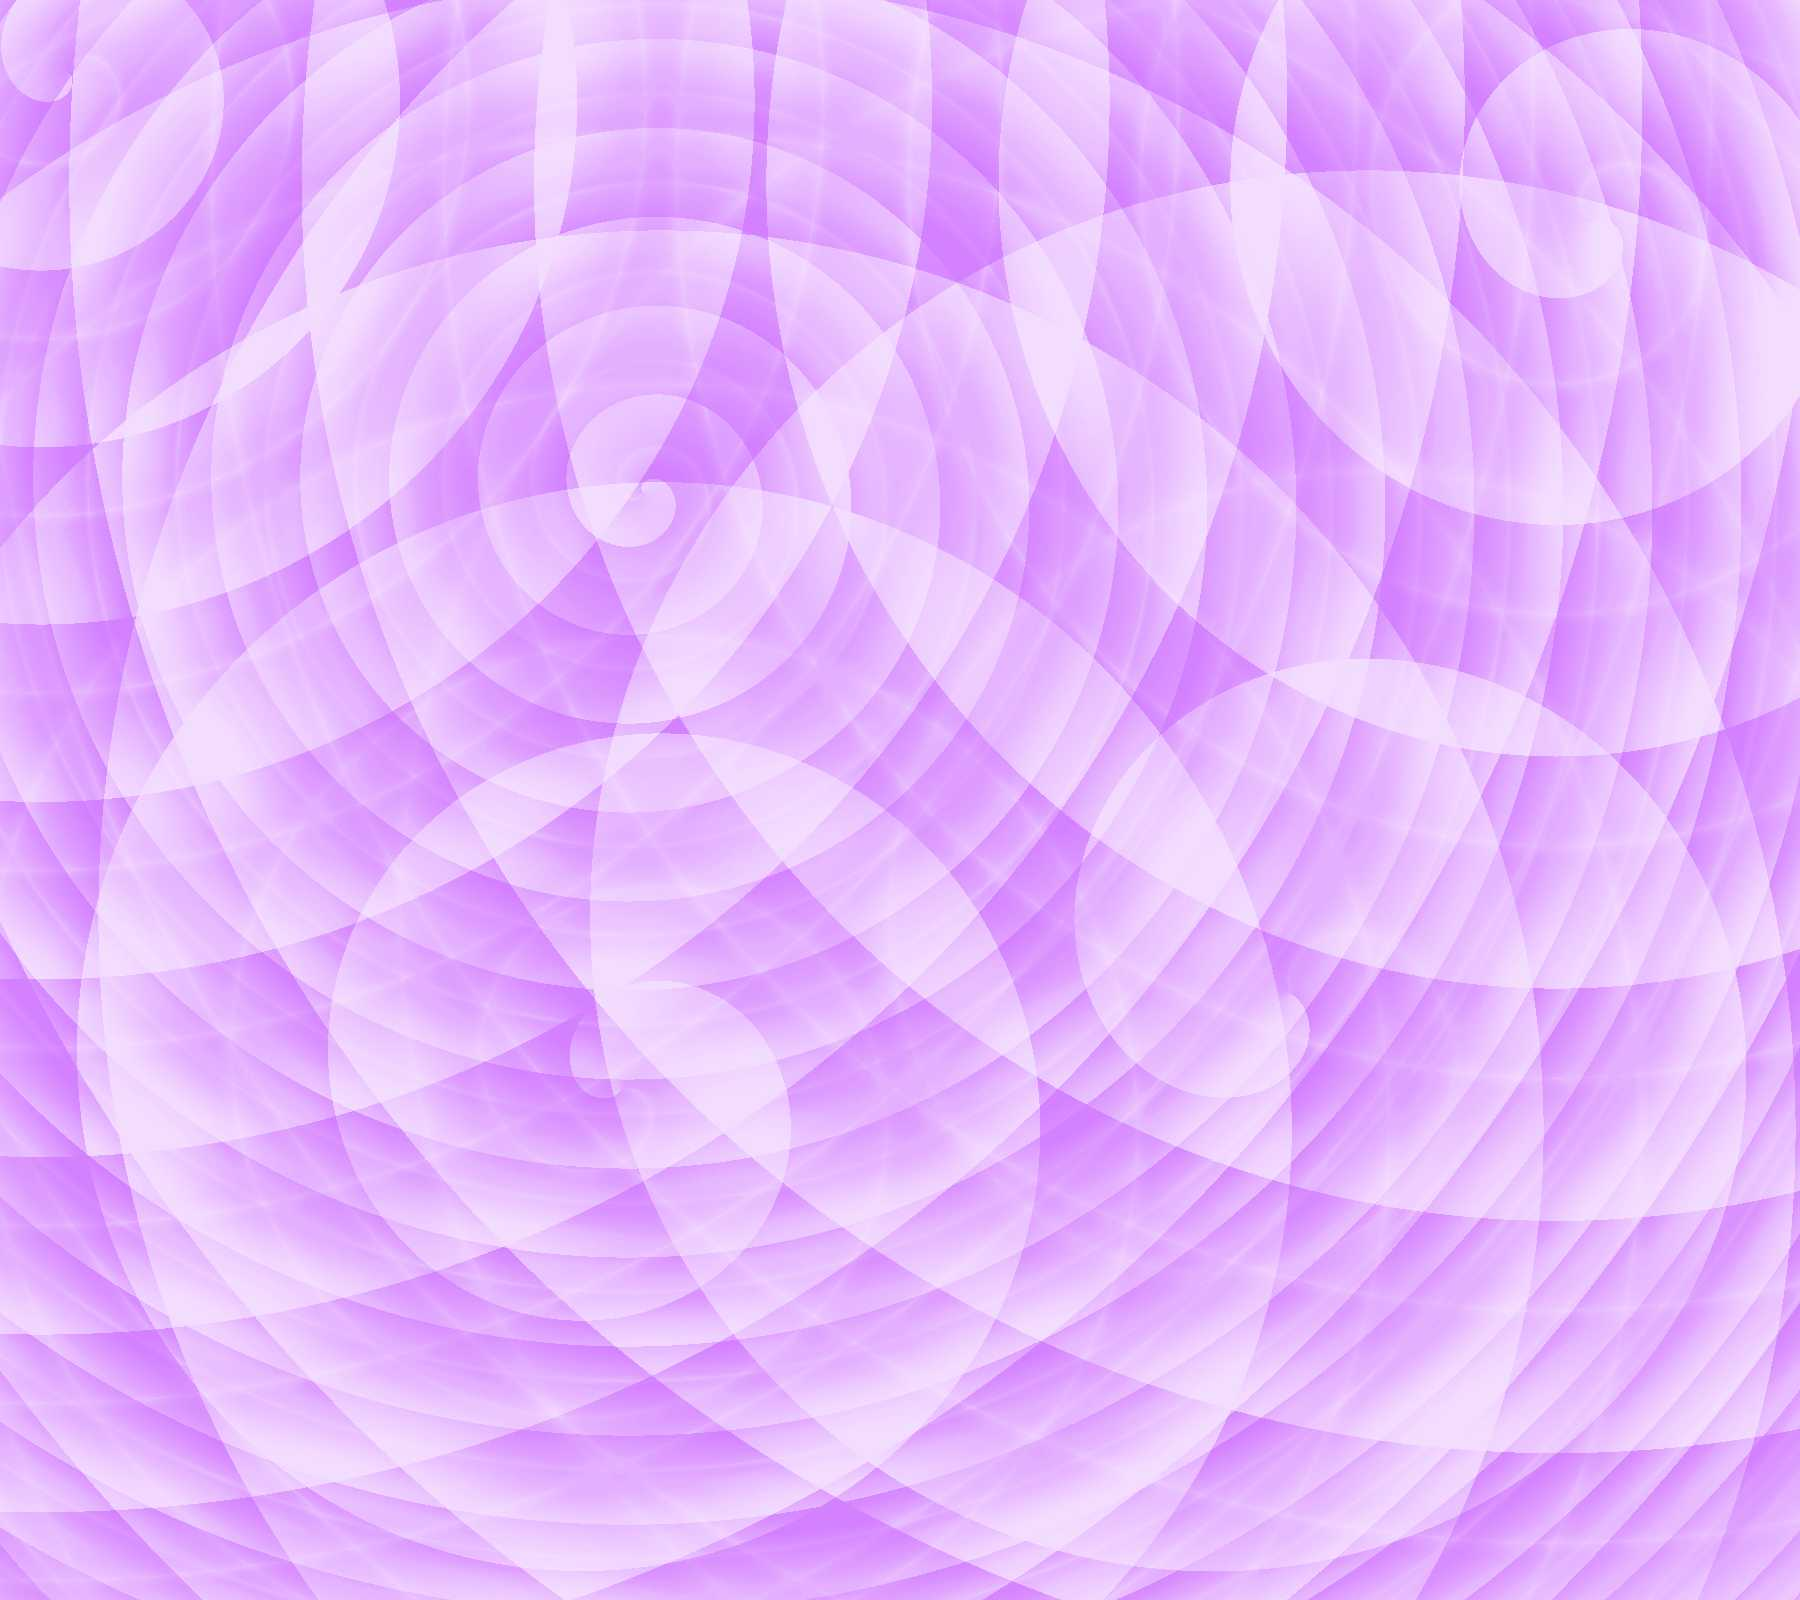 Lavender Random Spiral Swirls Background 1800x1600 ...